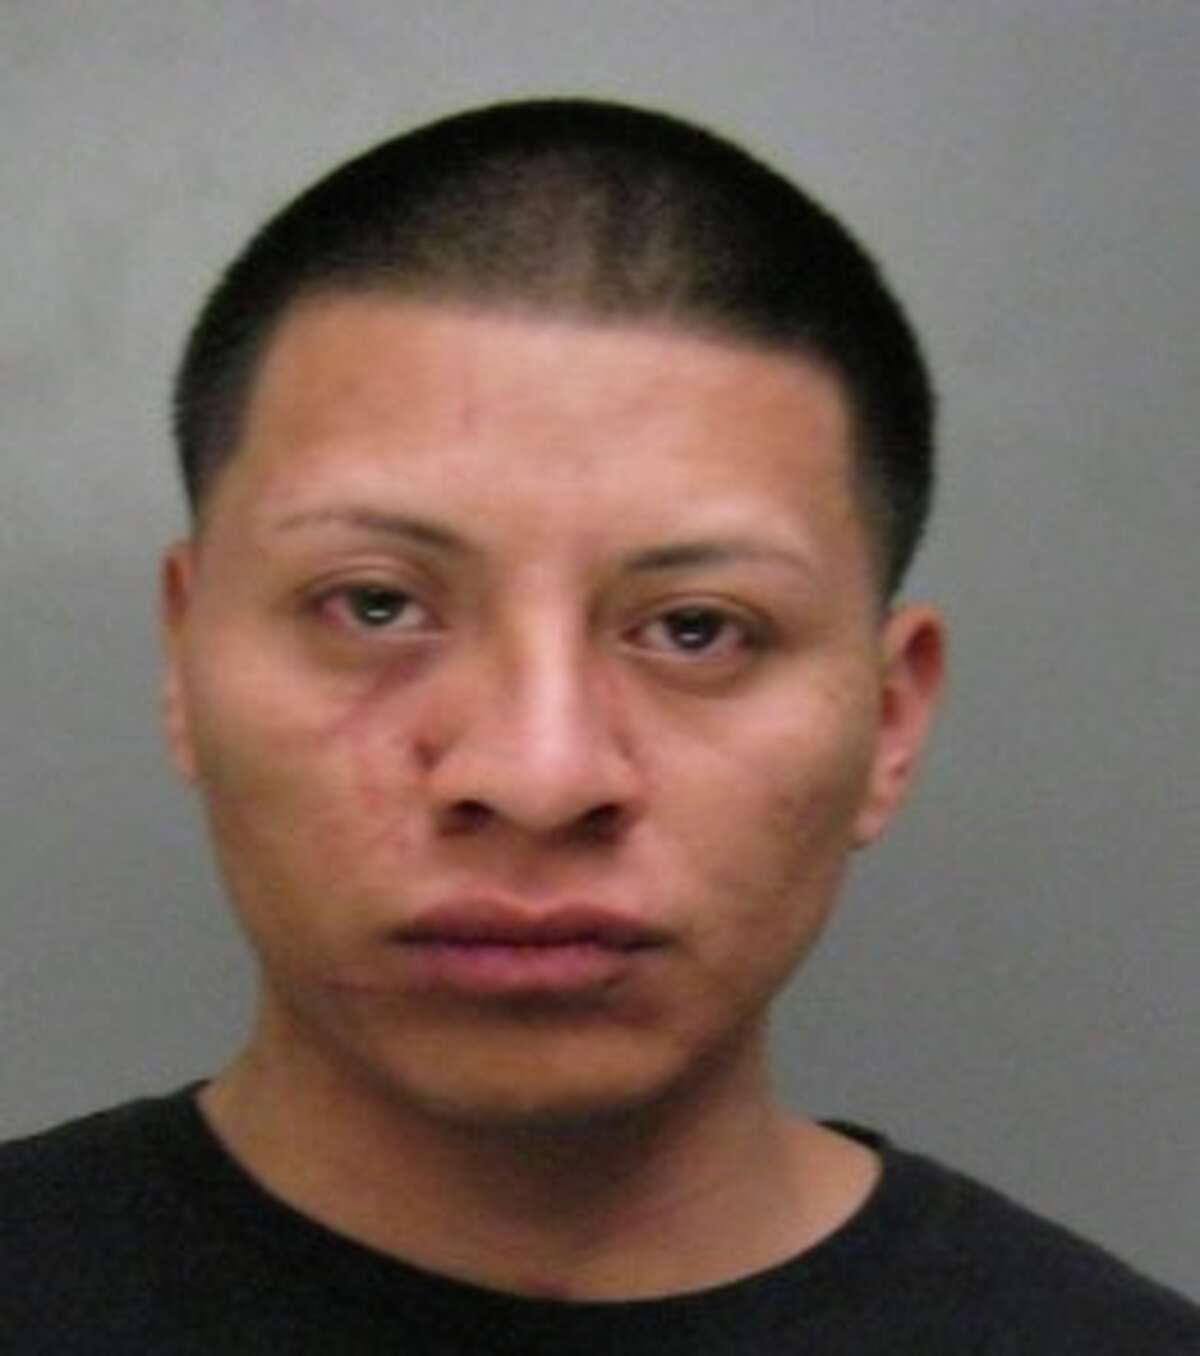 Bridgeport Francisco Trinidad DOB: 5/14/90 Wanted for: Negligent homicide with motor vehicle